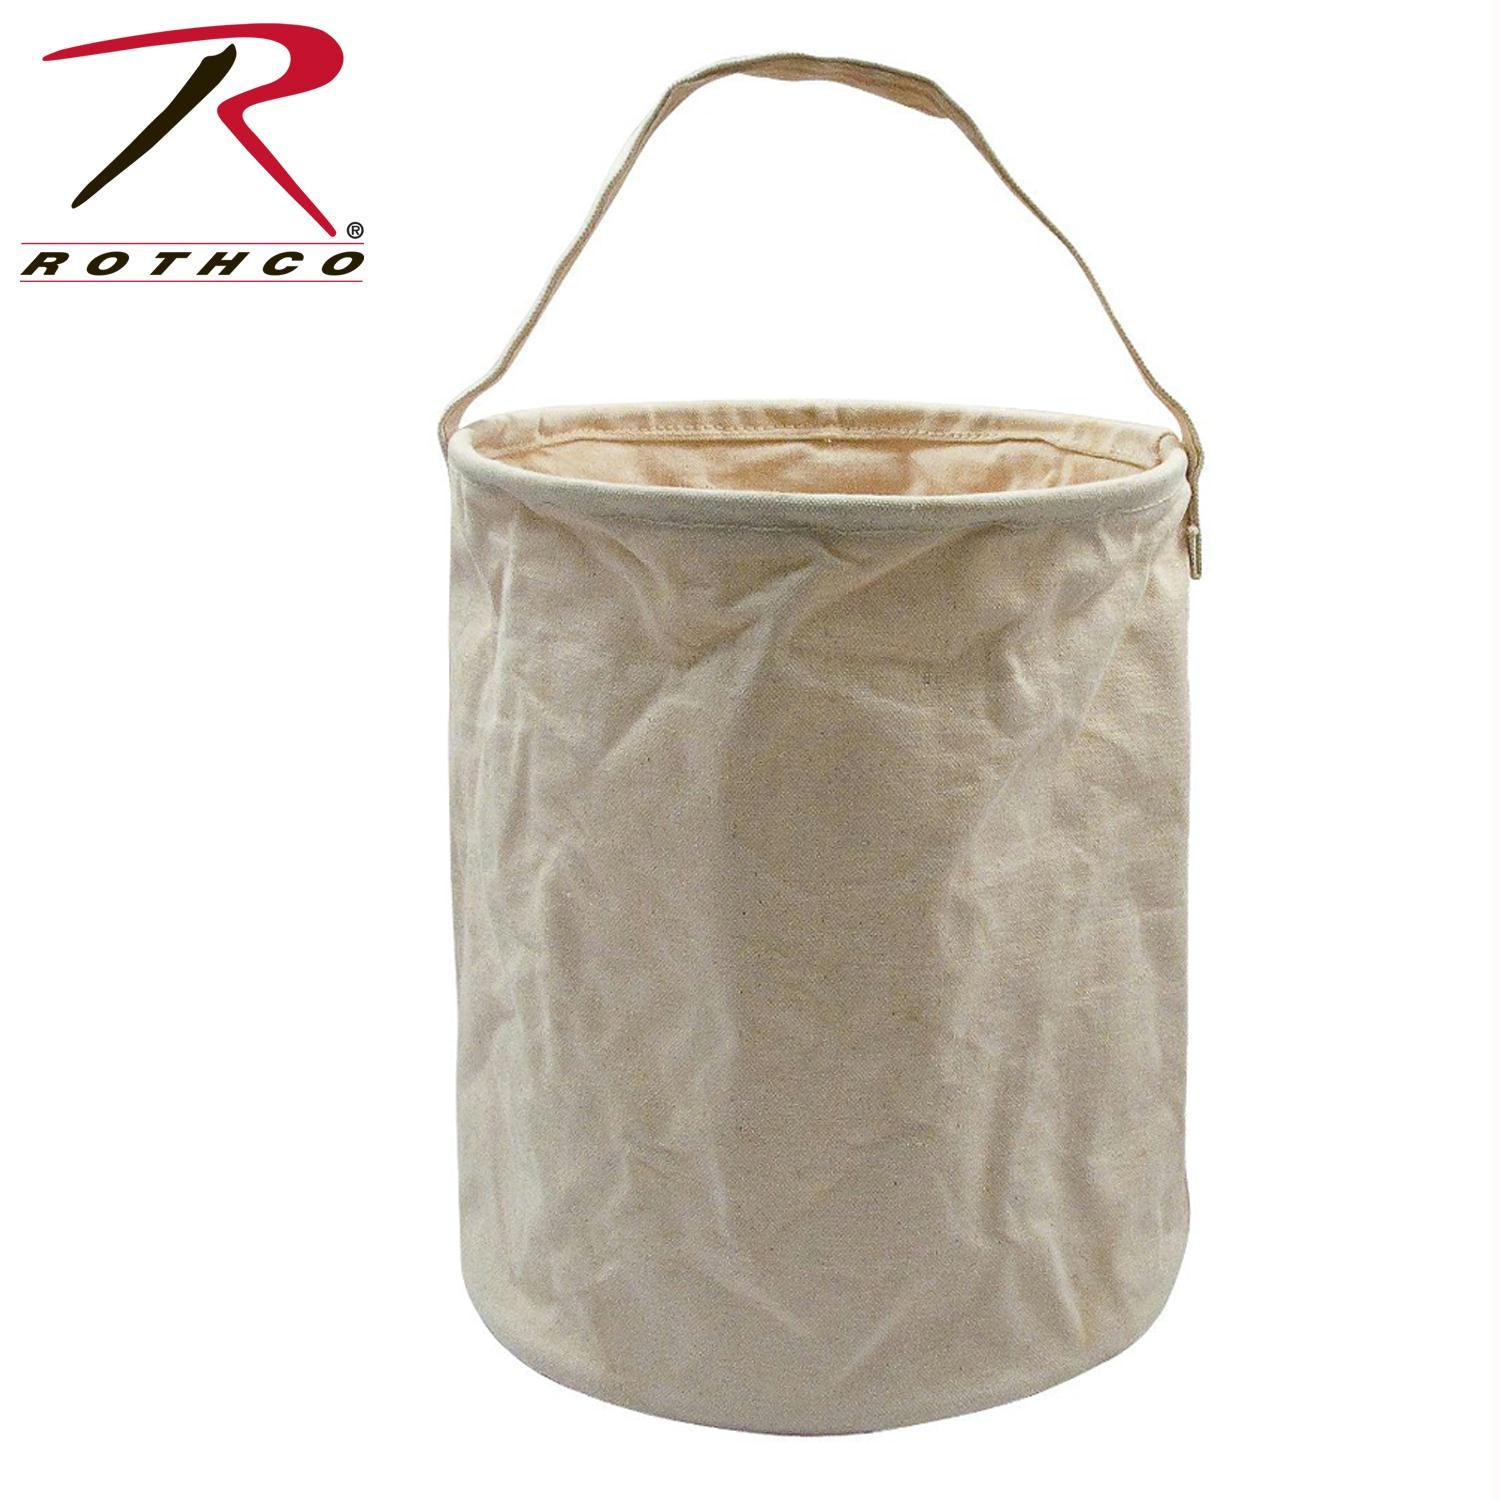 Rothco Canvas Water Bucket - Natural / L